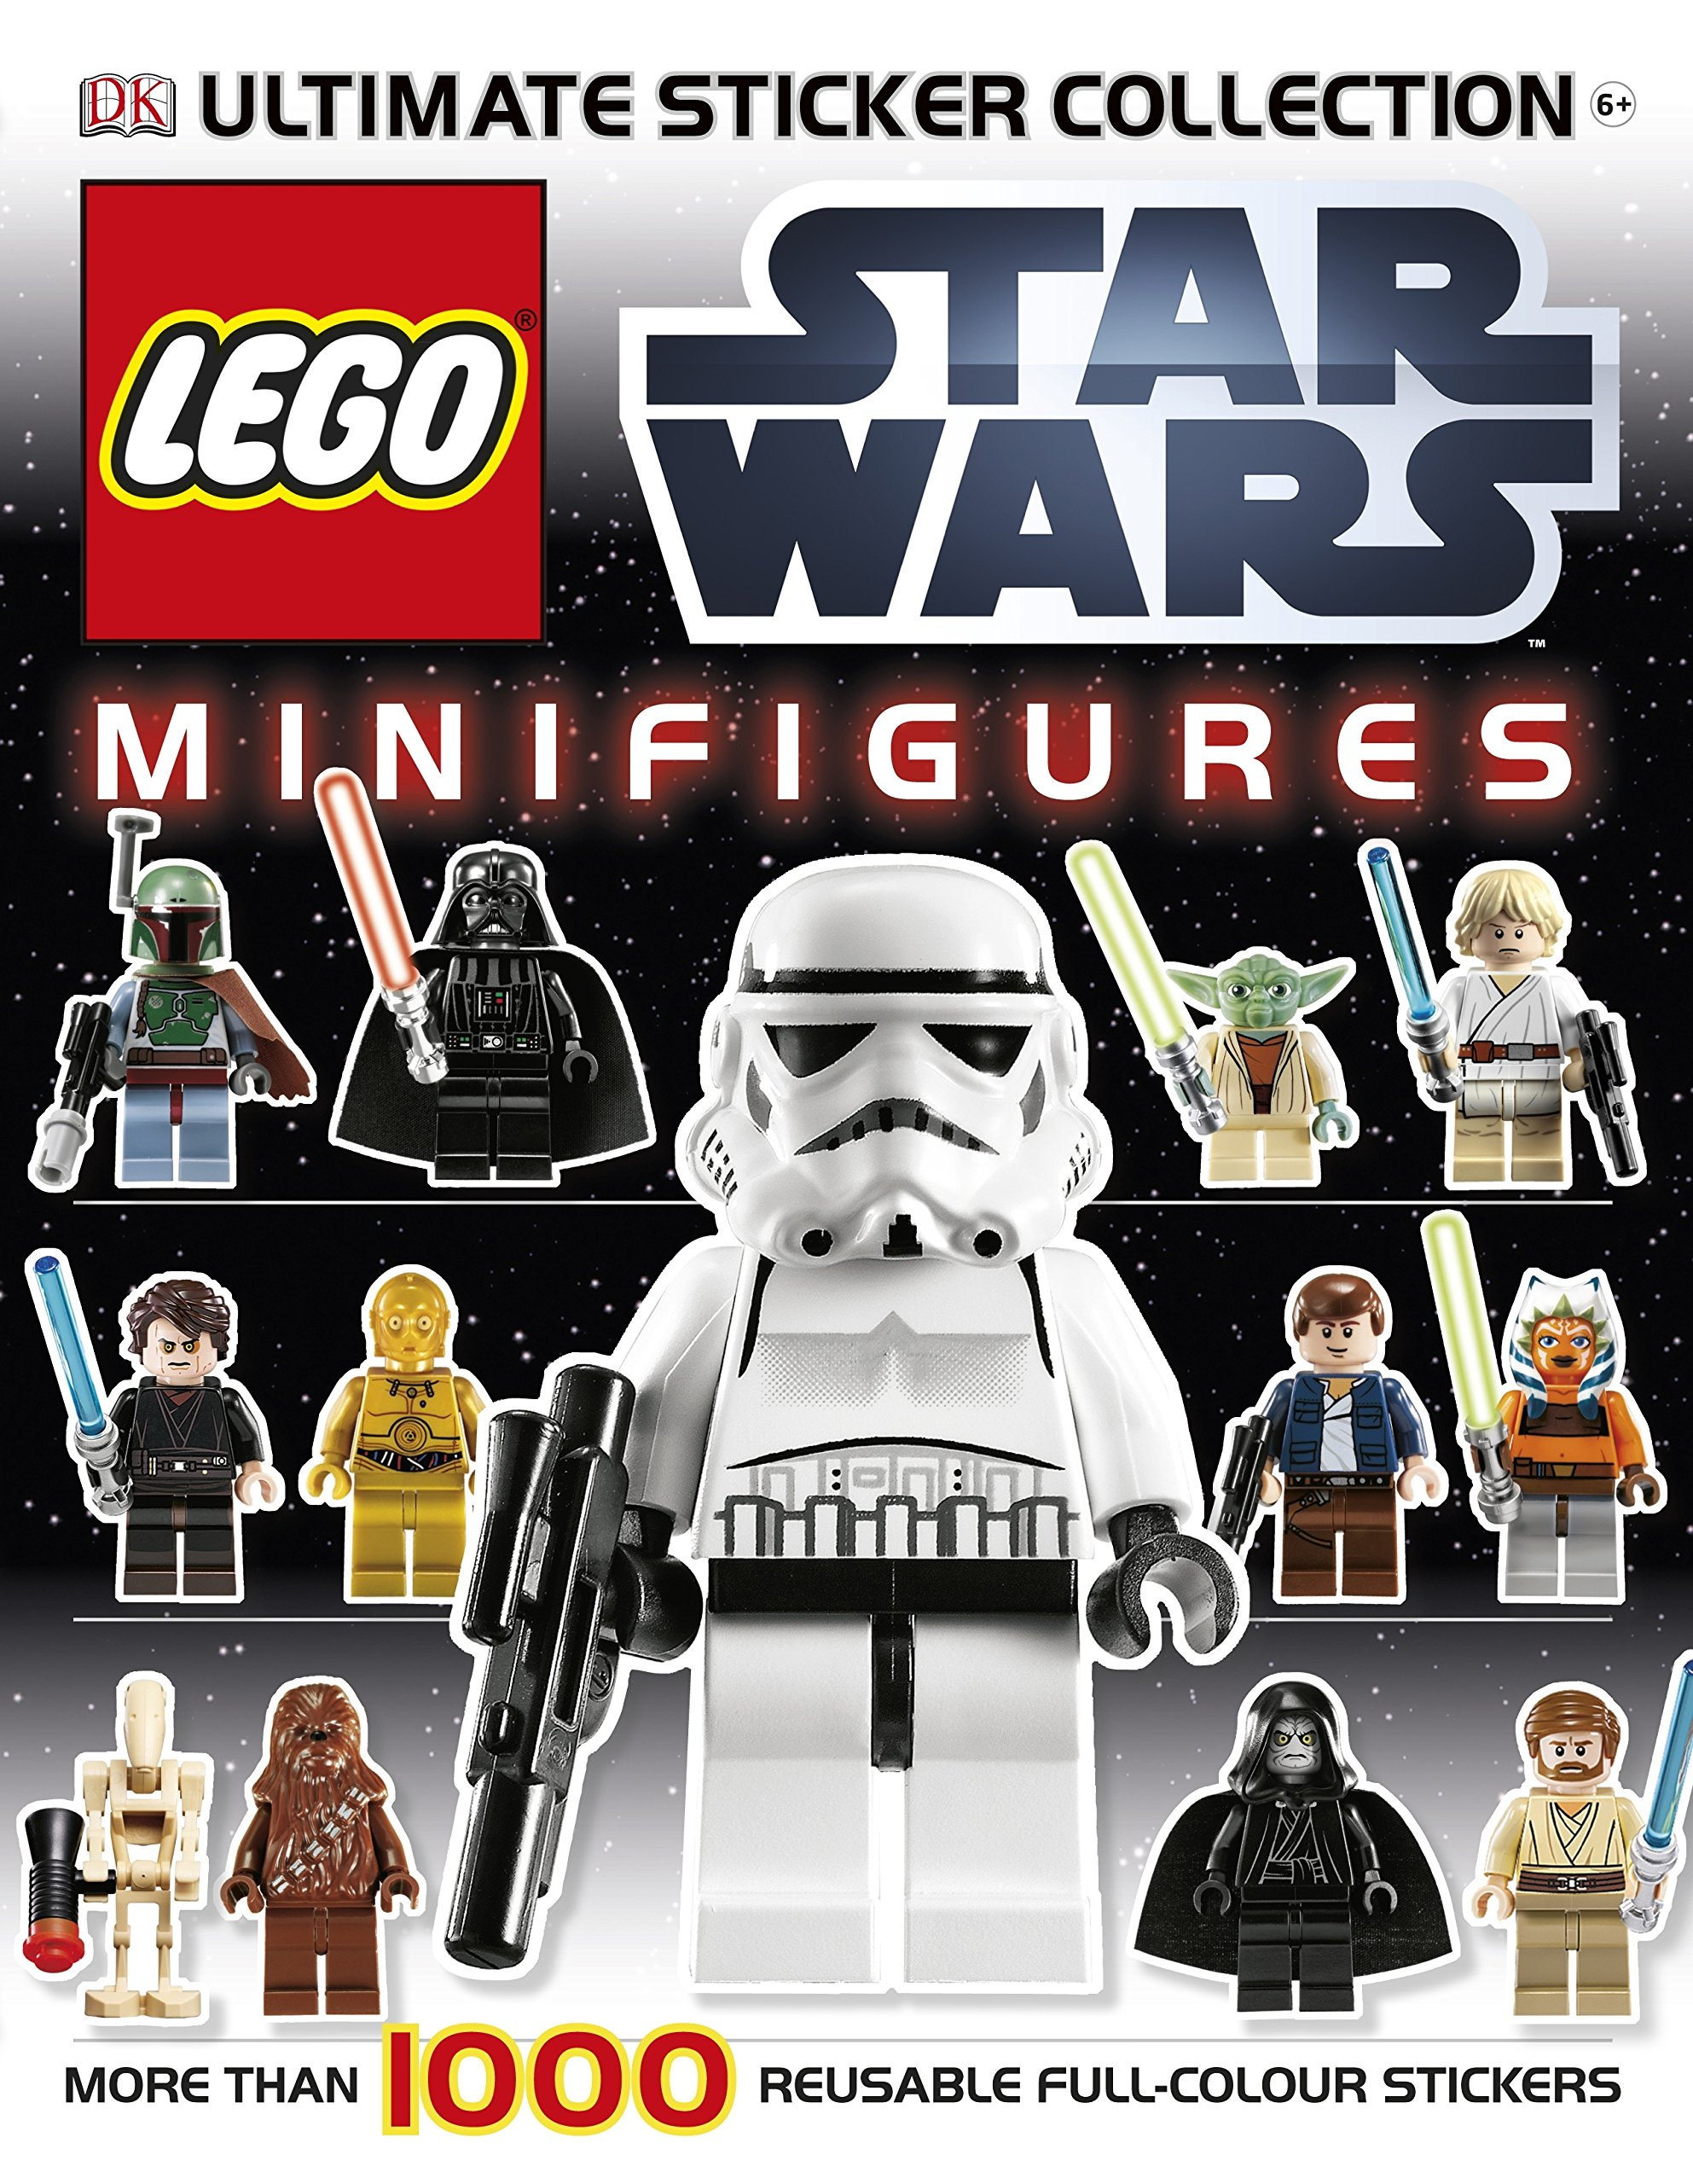 Lego Star Wars Minifigures Ultmate Sticker Collection